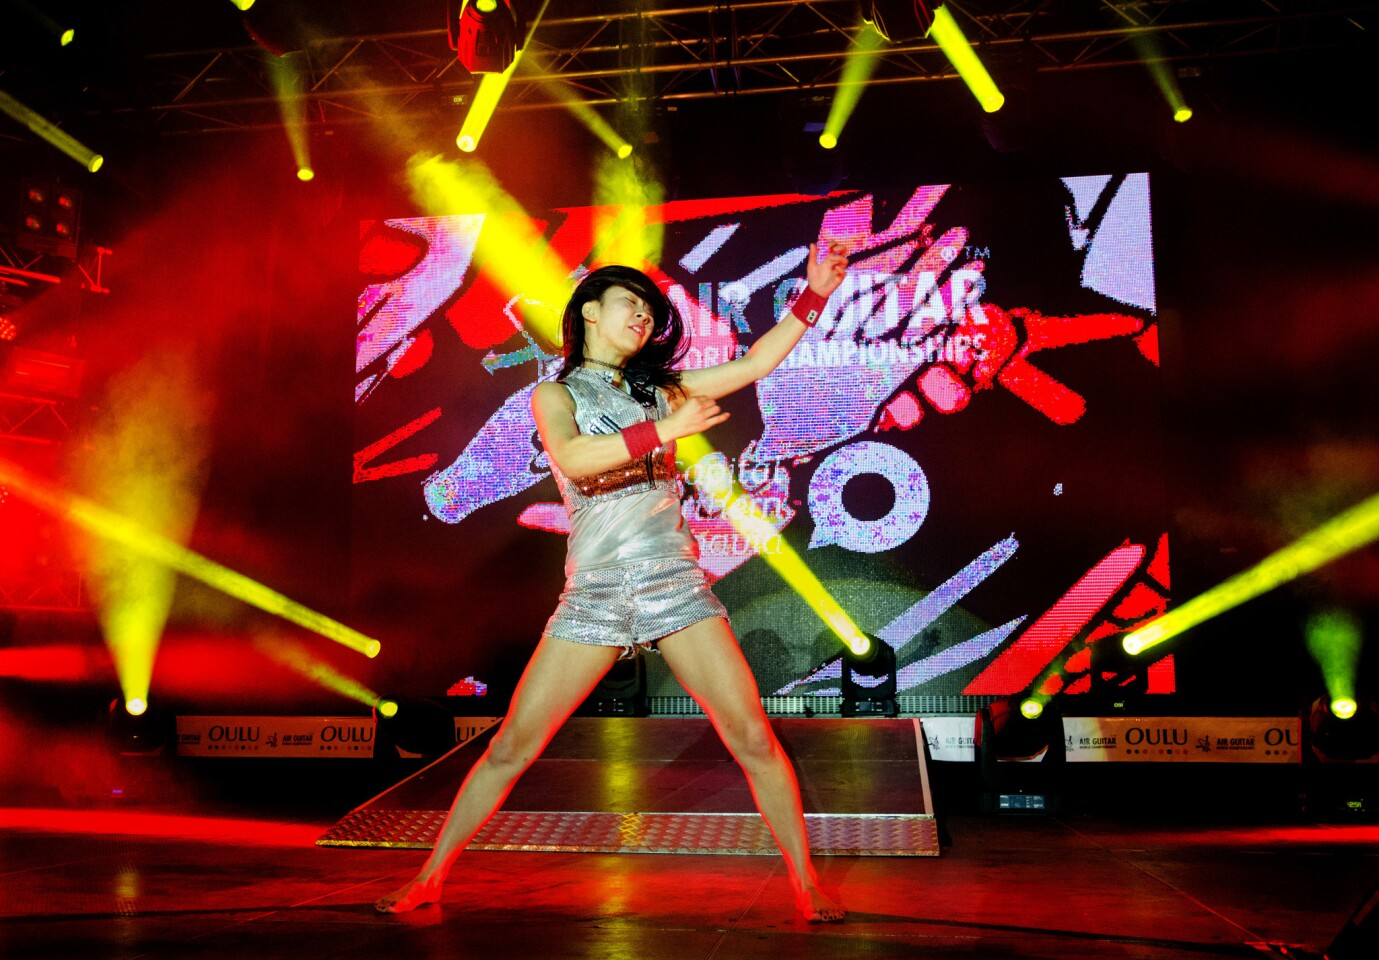 Air Guitar World Championships contestants compete for prizes and this year will celebrate the event's 20th anniversary in Oulu, Finland.